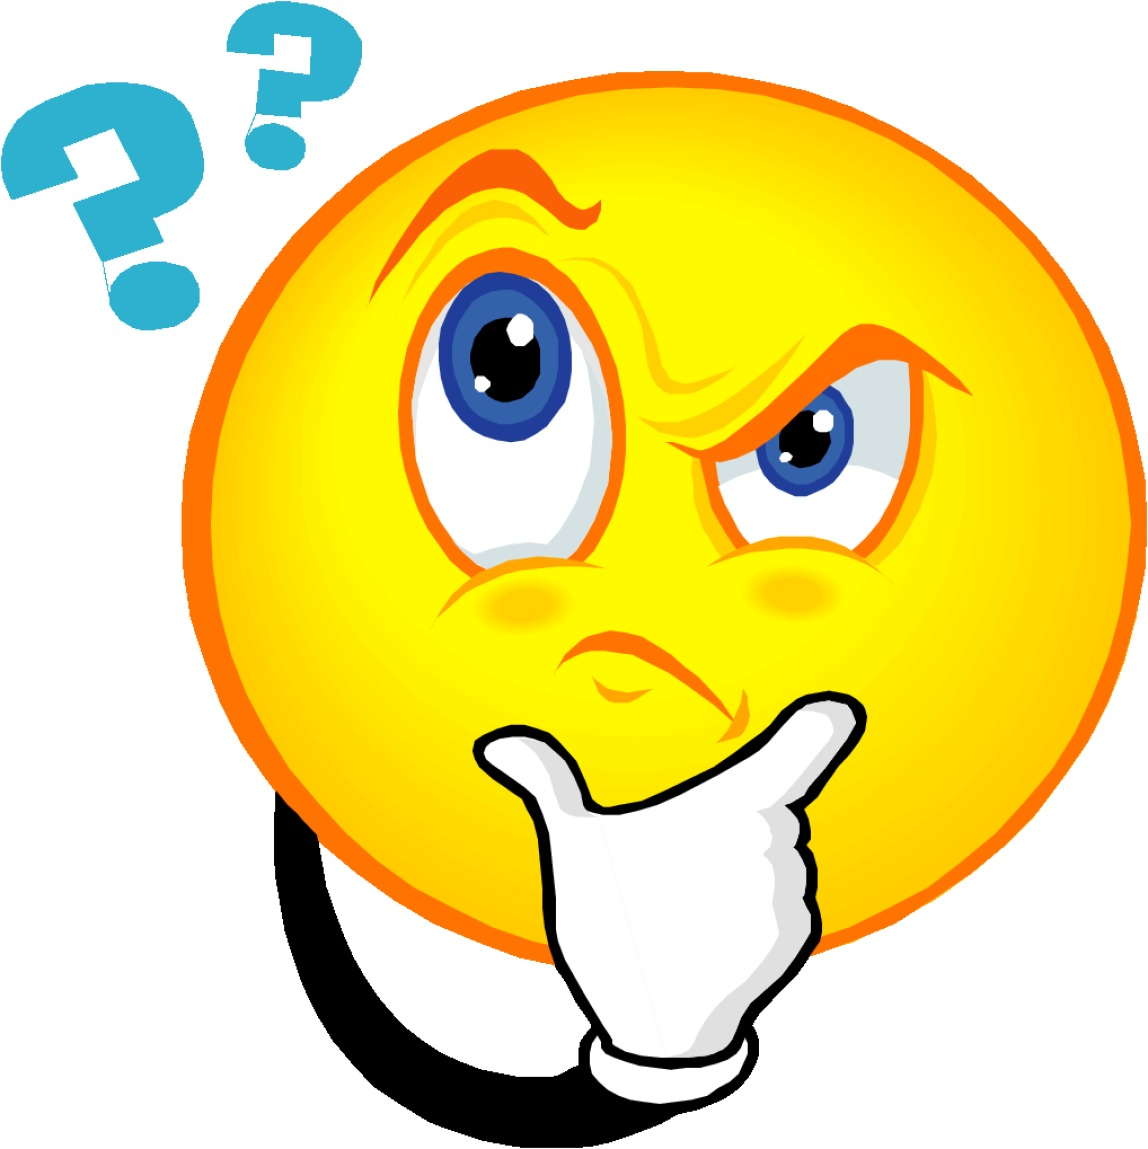 confused-face-clipart-kaeqw6-clipart